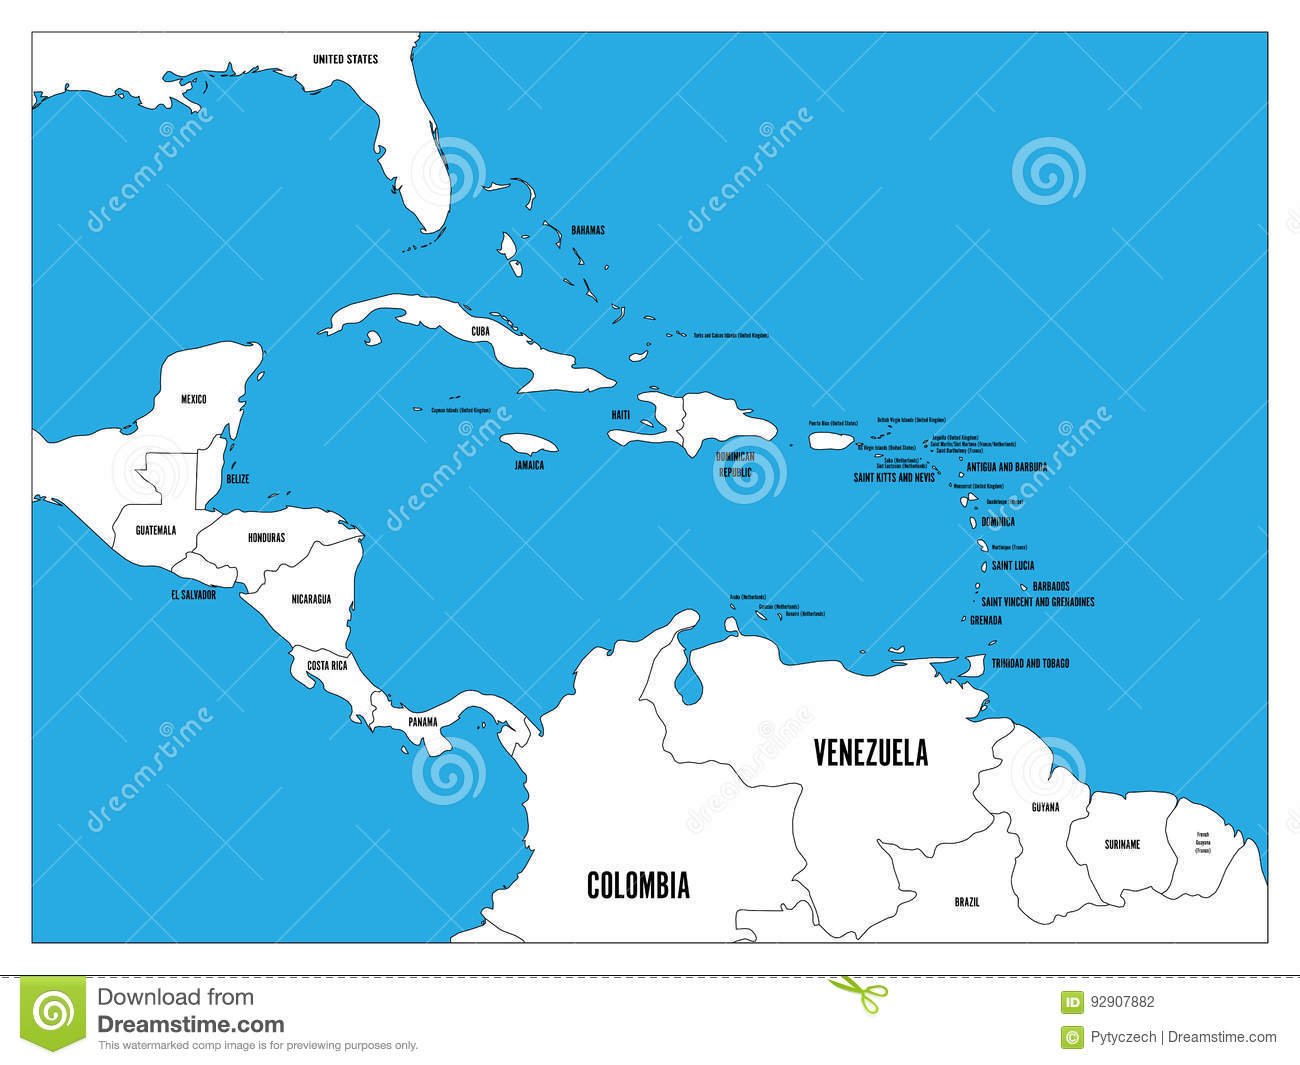 Black political world map with country borders and white state name central america and carribean states political map black outline borders with black country names labels gumiabroncs Image collections